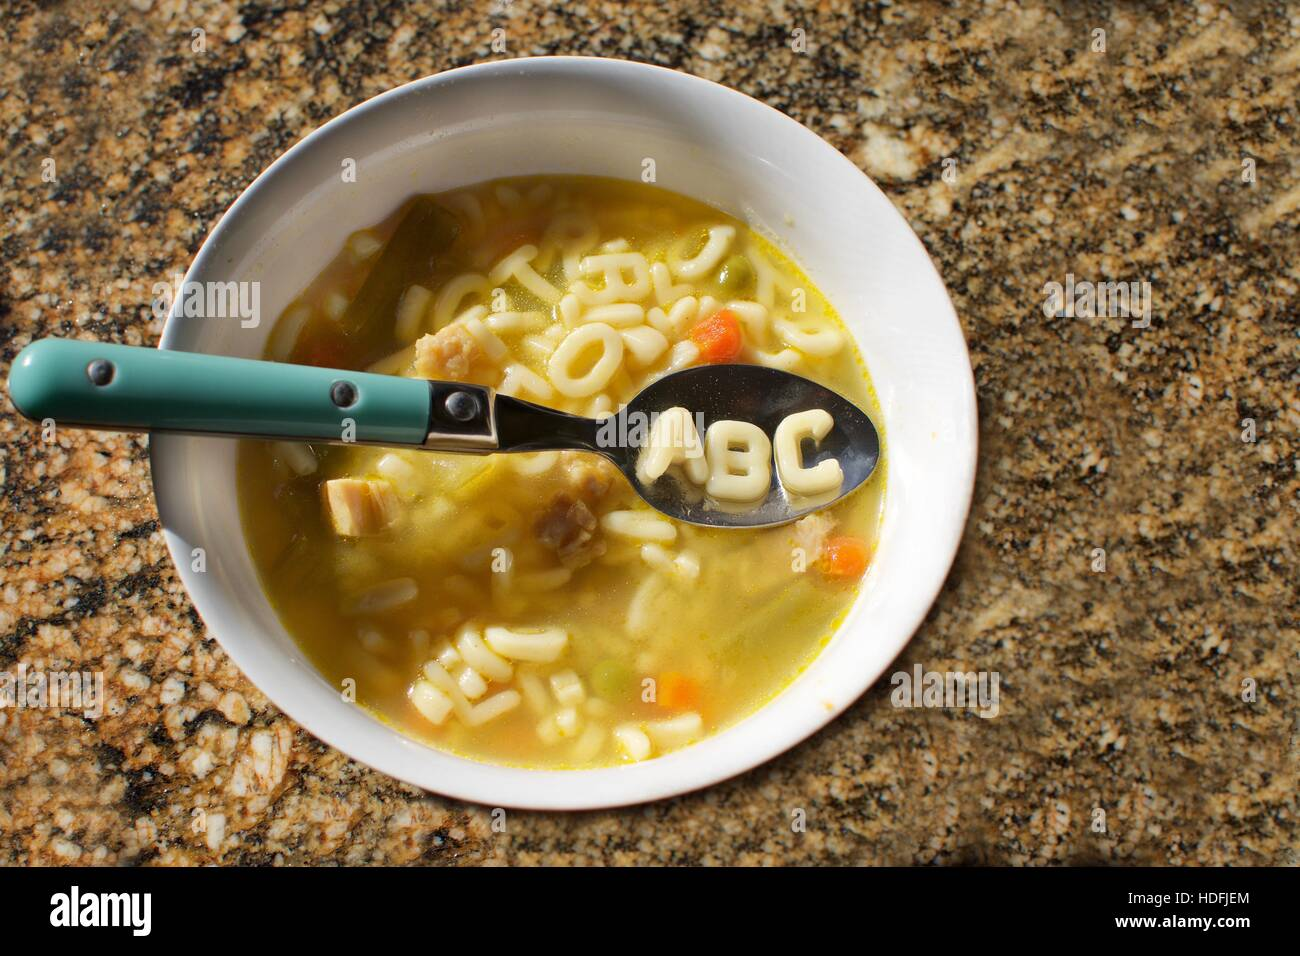 bowl of alphabet soup with the letters abc spelled out in noodles - Stock Image